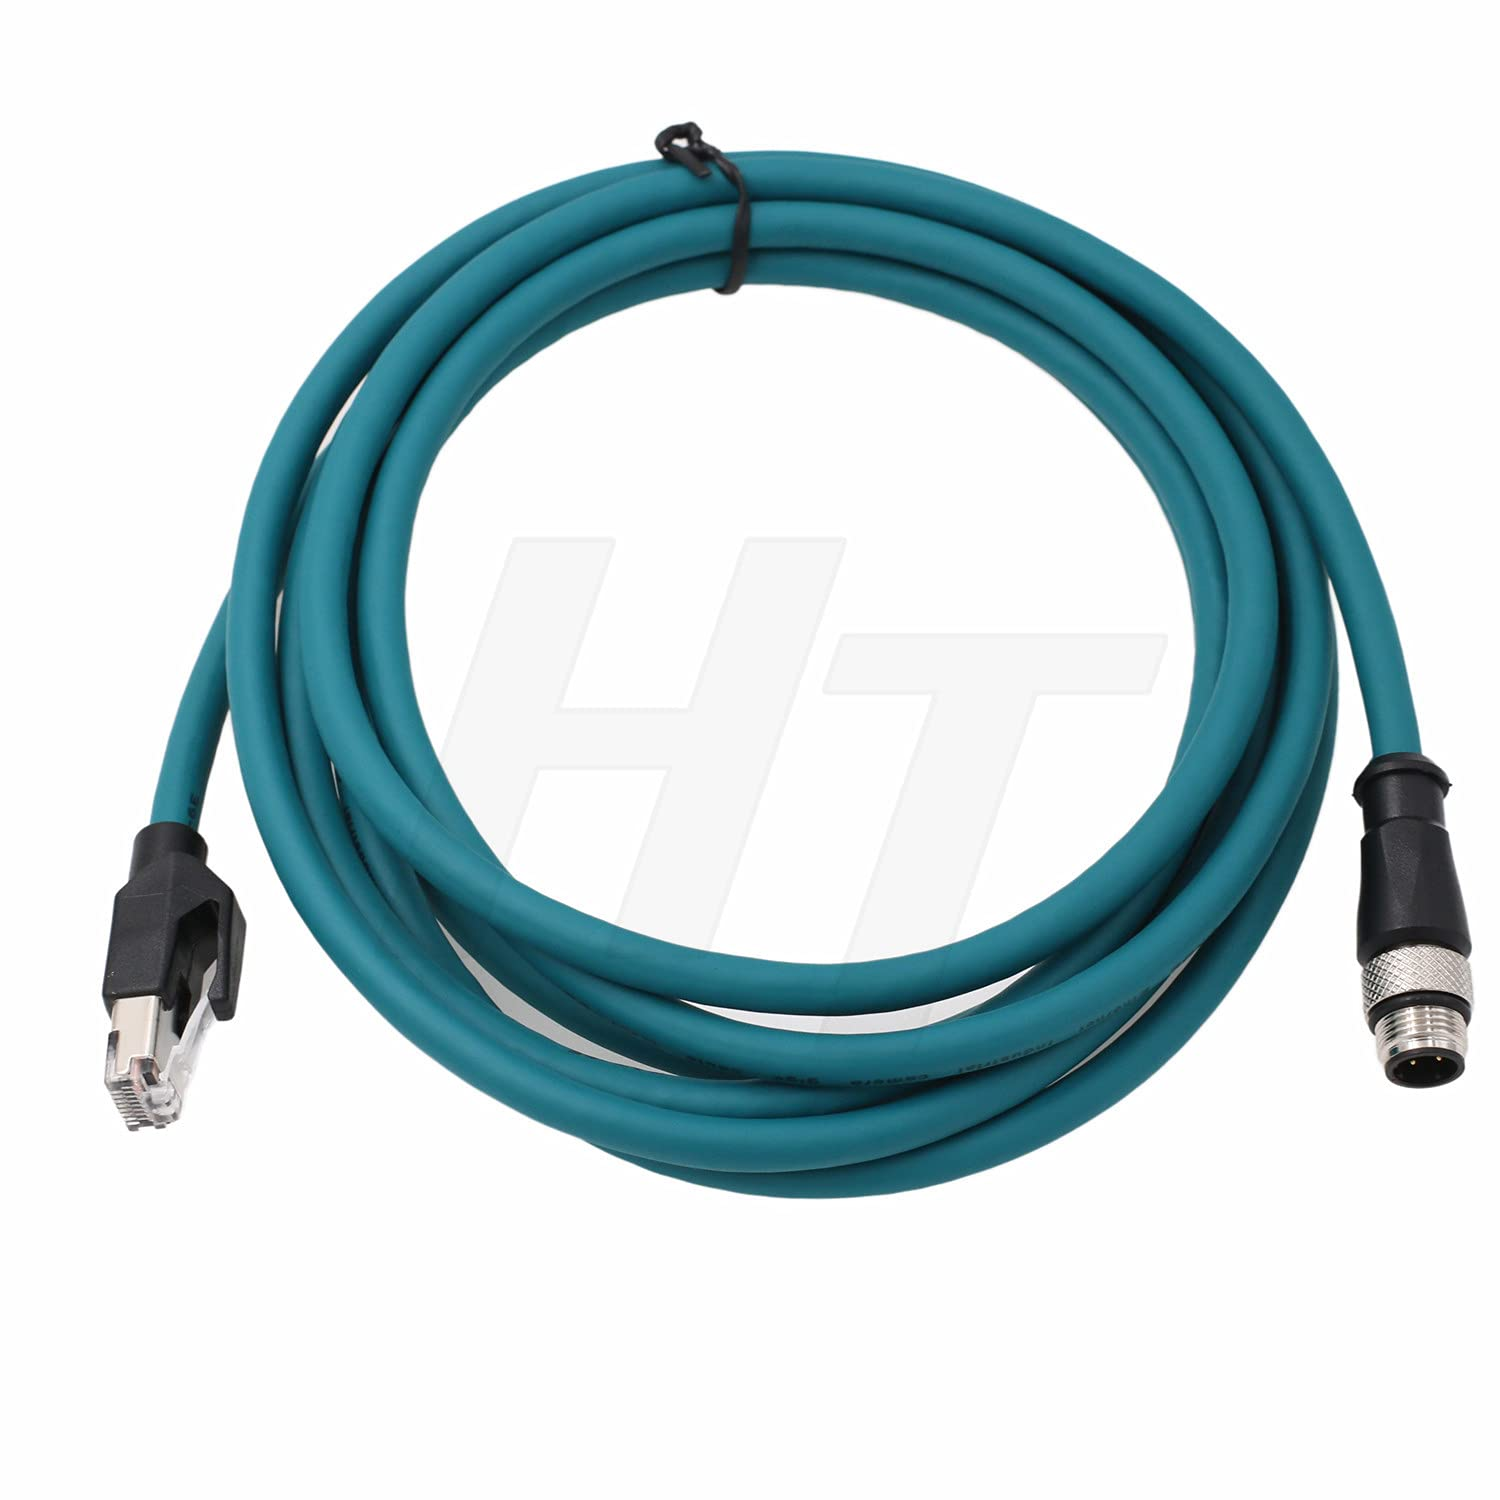 HangTon Industrial Machinery M12 4 Pin D-Code RJ45 Ethernet Power Cable, Shielded High Flex Waterproof Network Cable (5m)